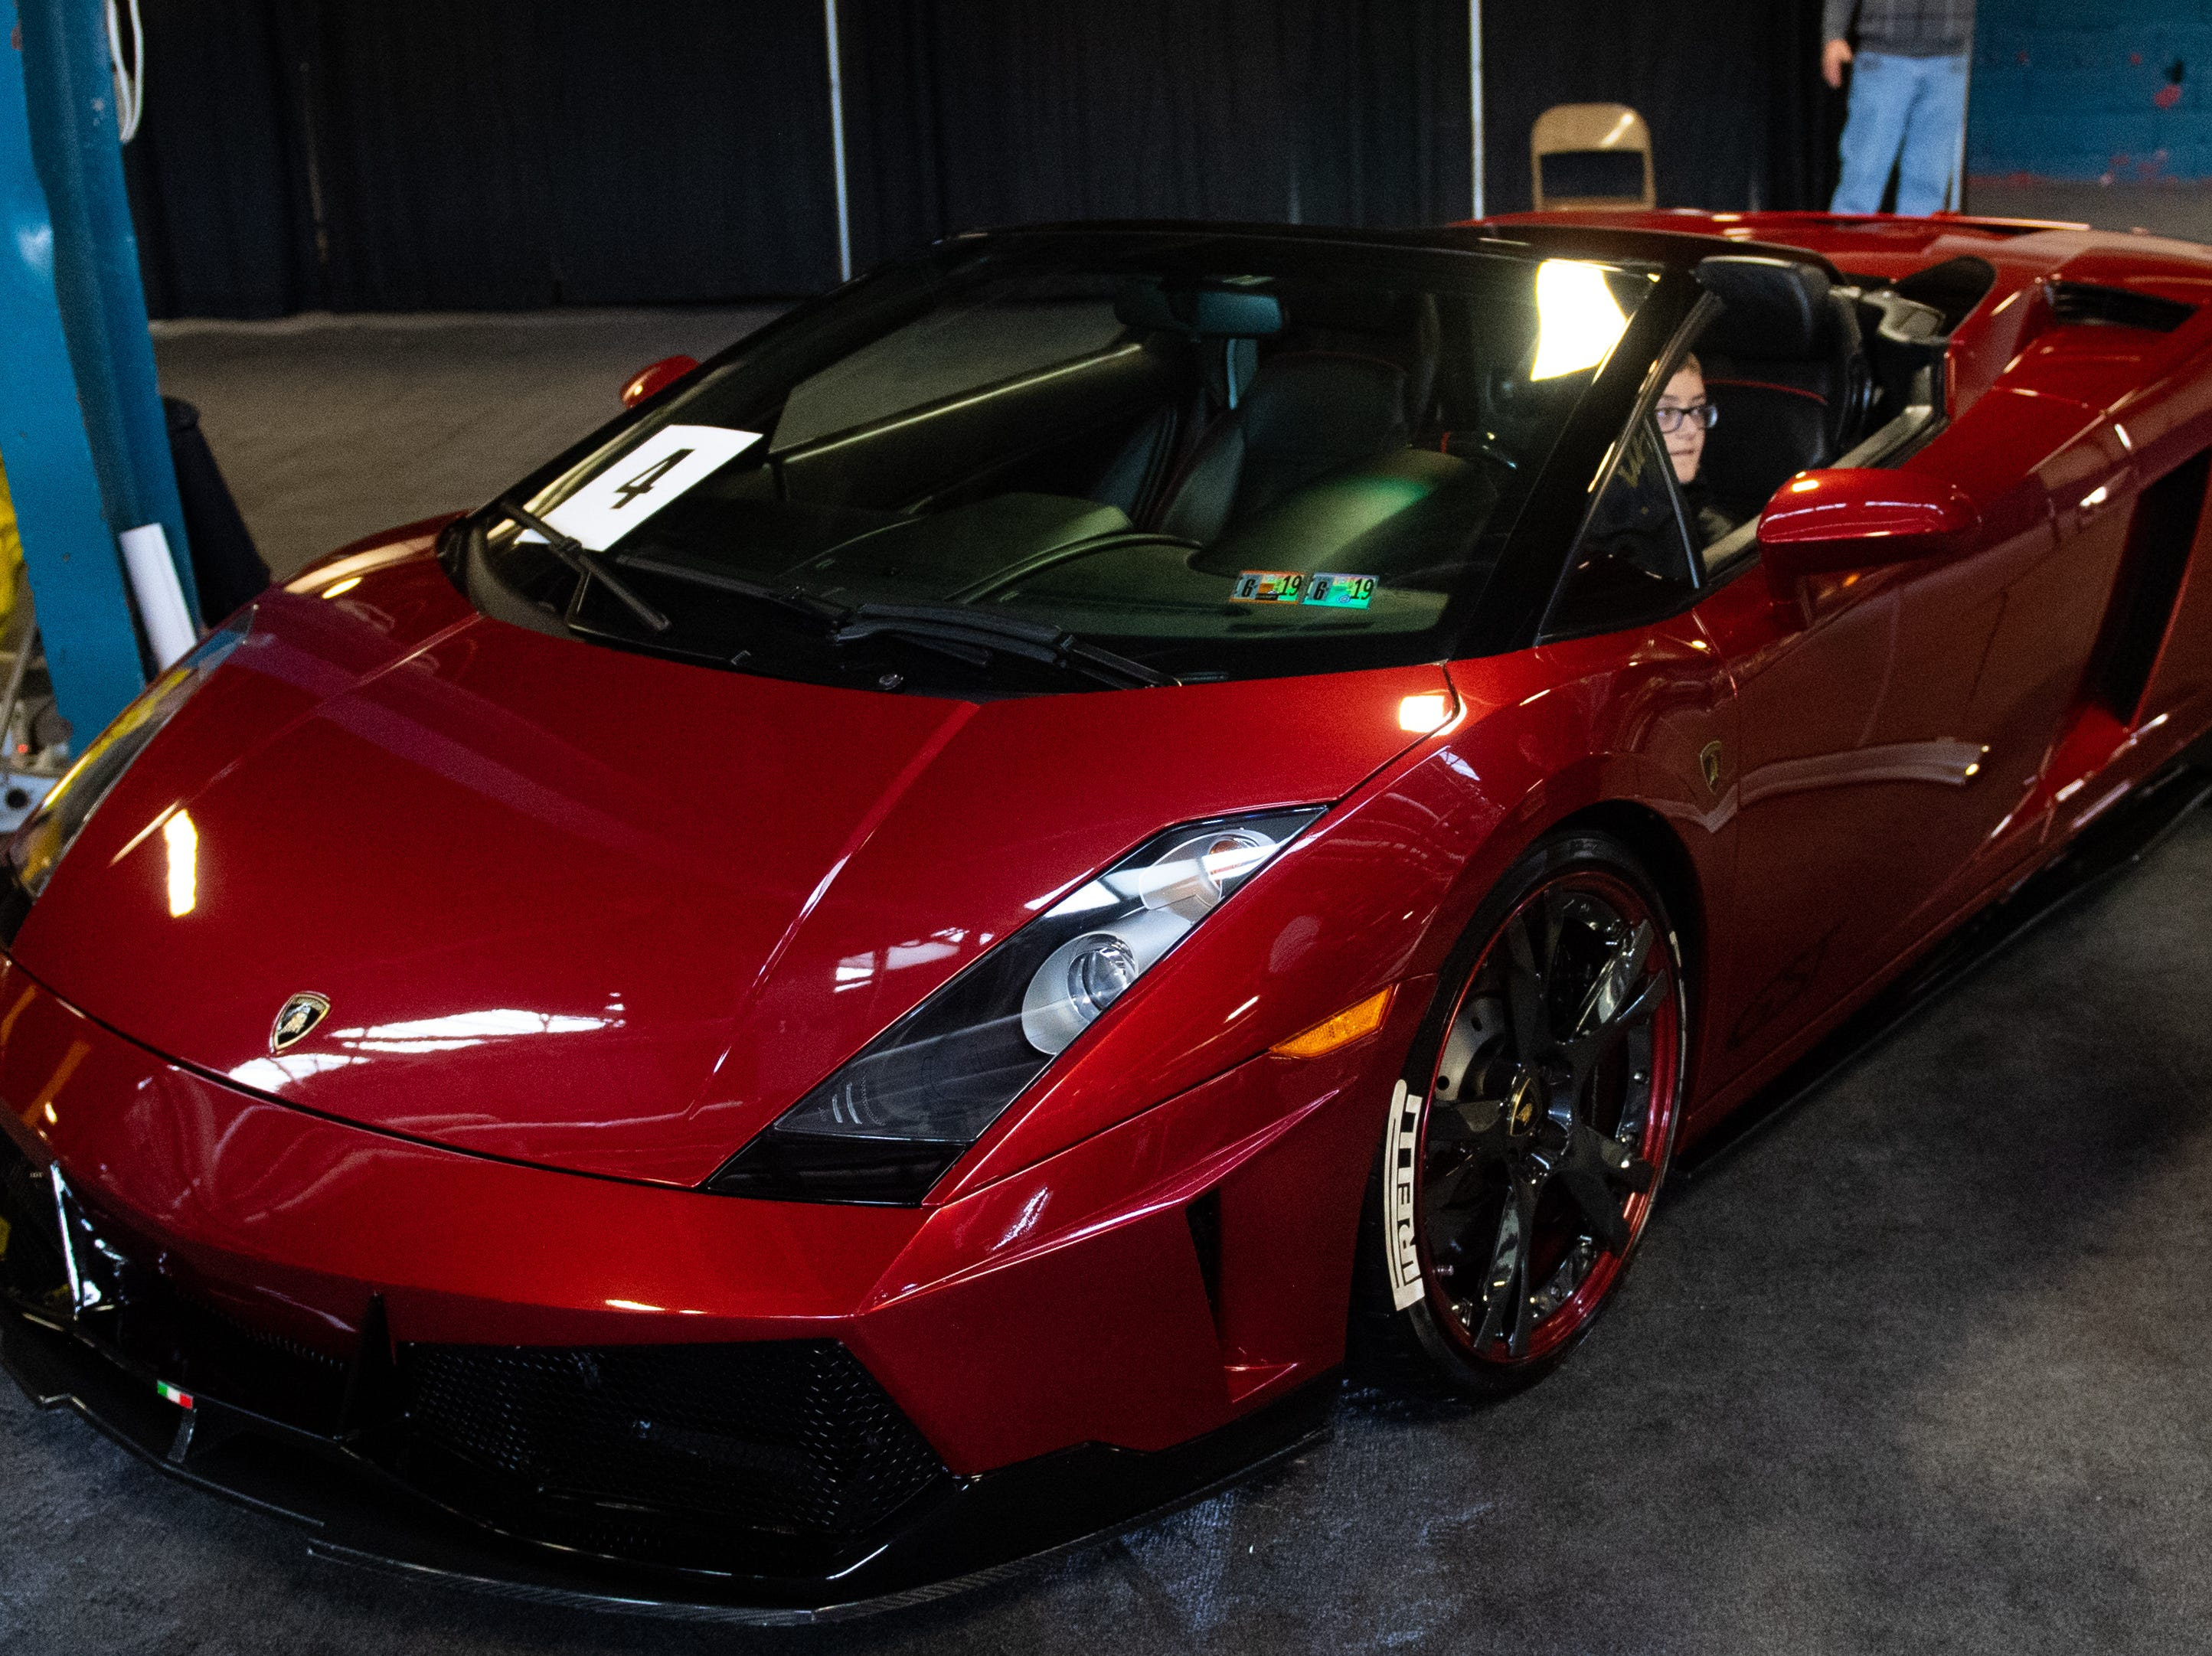 Children can't wait to sit inside of a Lamborghini during the 2019 Pennsylvania Auto Show, Saturday, January 26, 2019 at the Pennsylvania Farm Show Complex & Expo Center. The auto show continues on Sunday from 10 a.m. to 5 p.m.